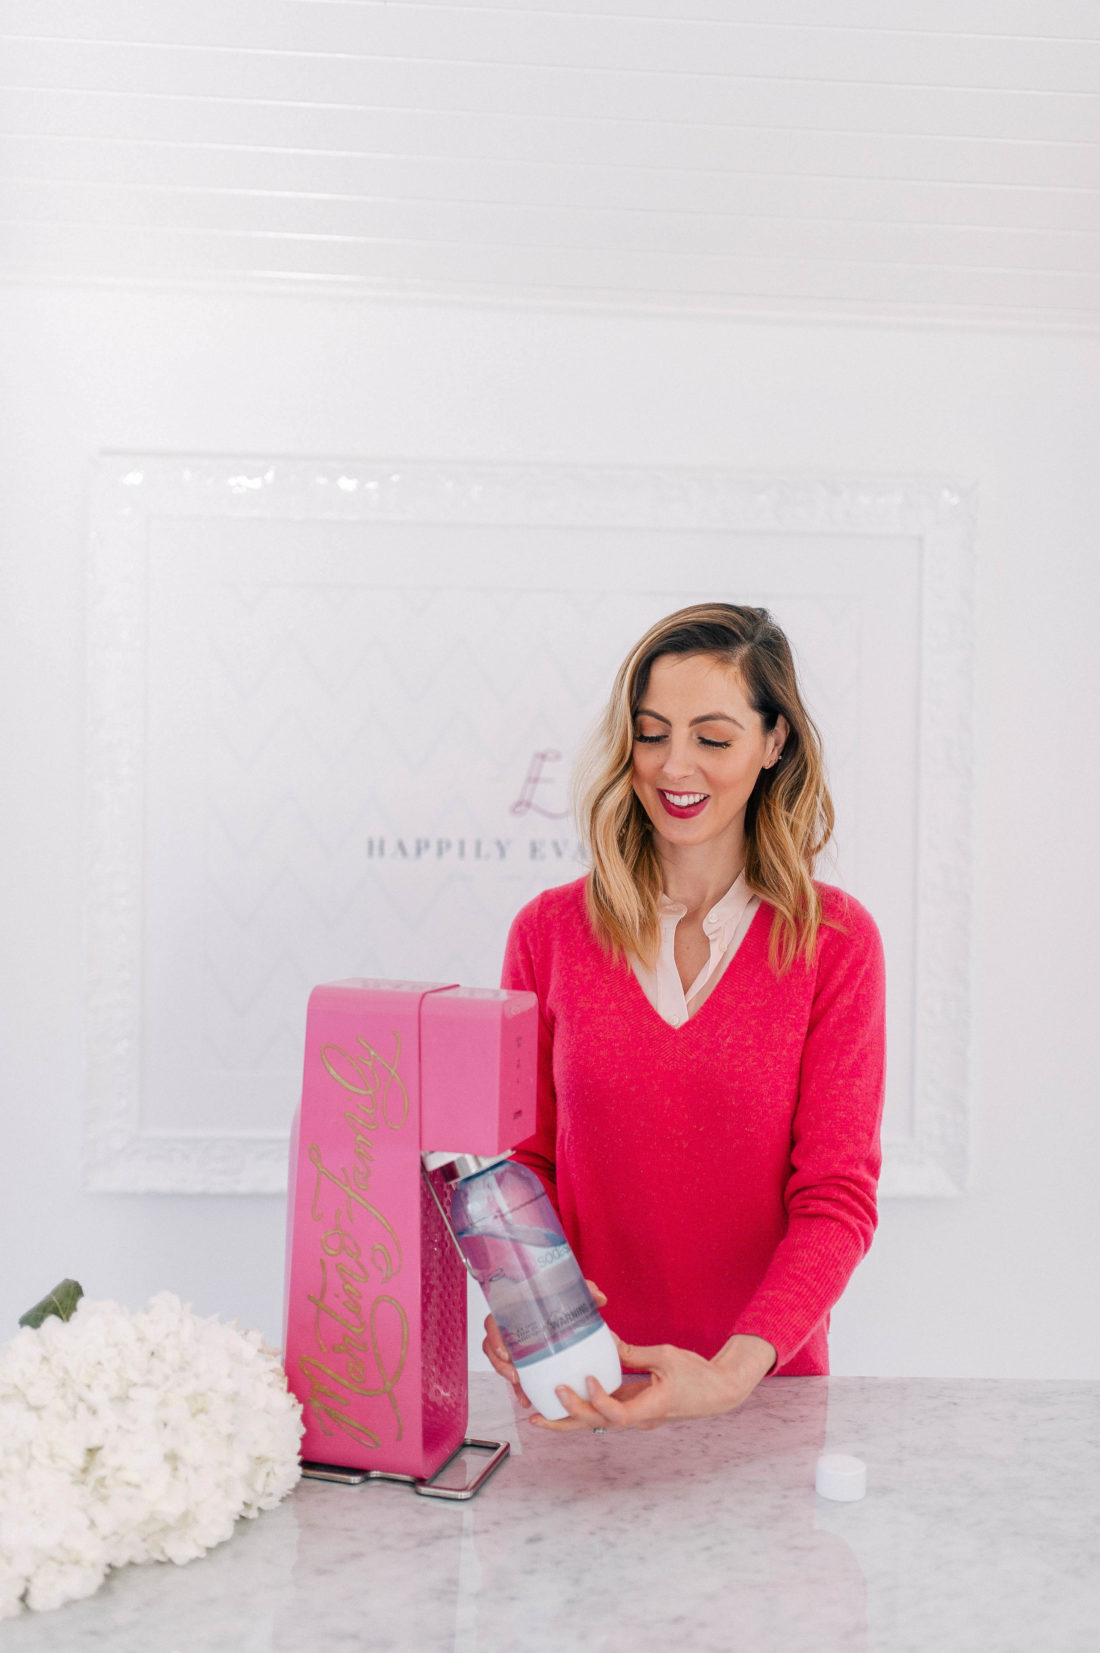 Eva Amurri Martino uses her Soda Stream sparkling water maker in the studio of her Connecticut home